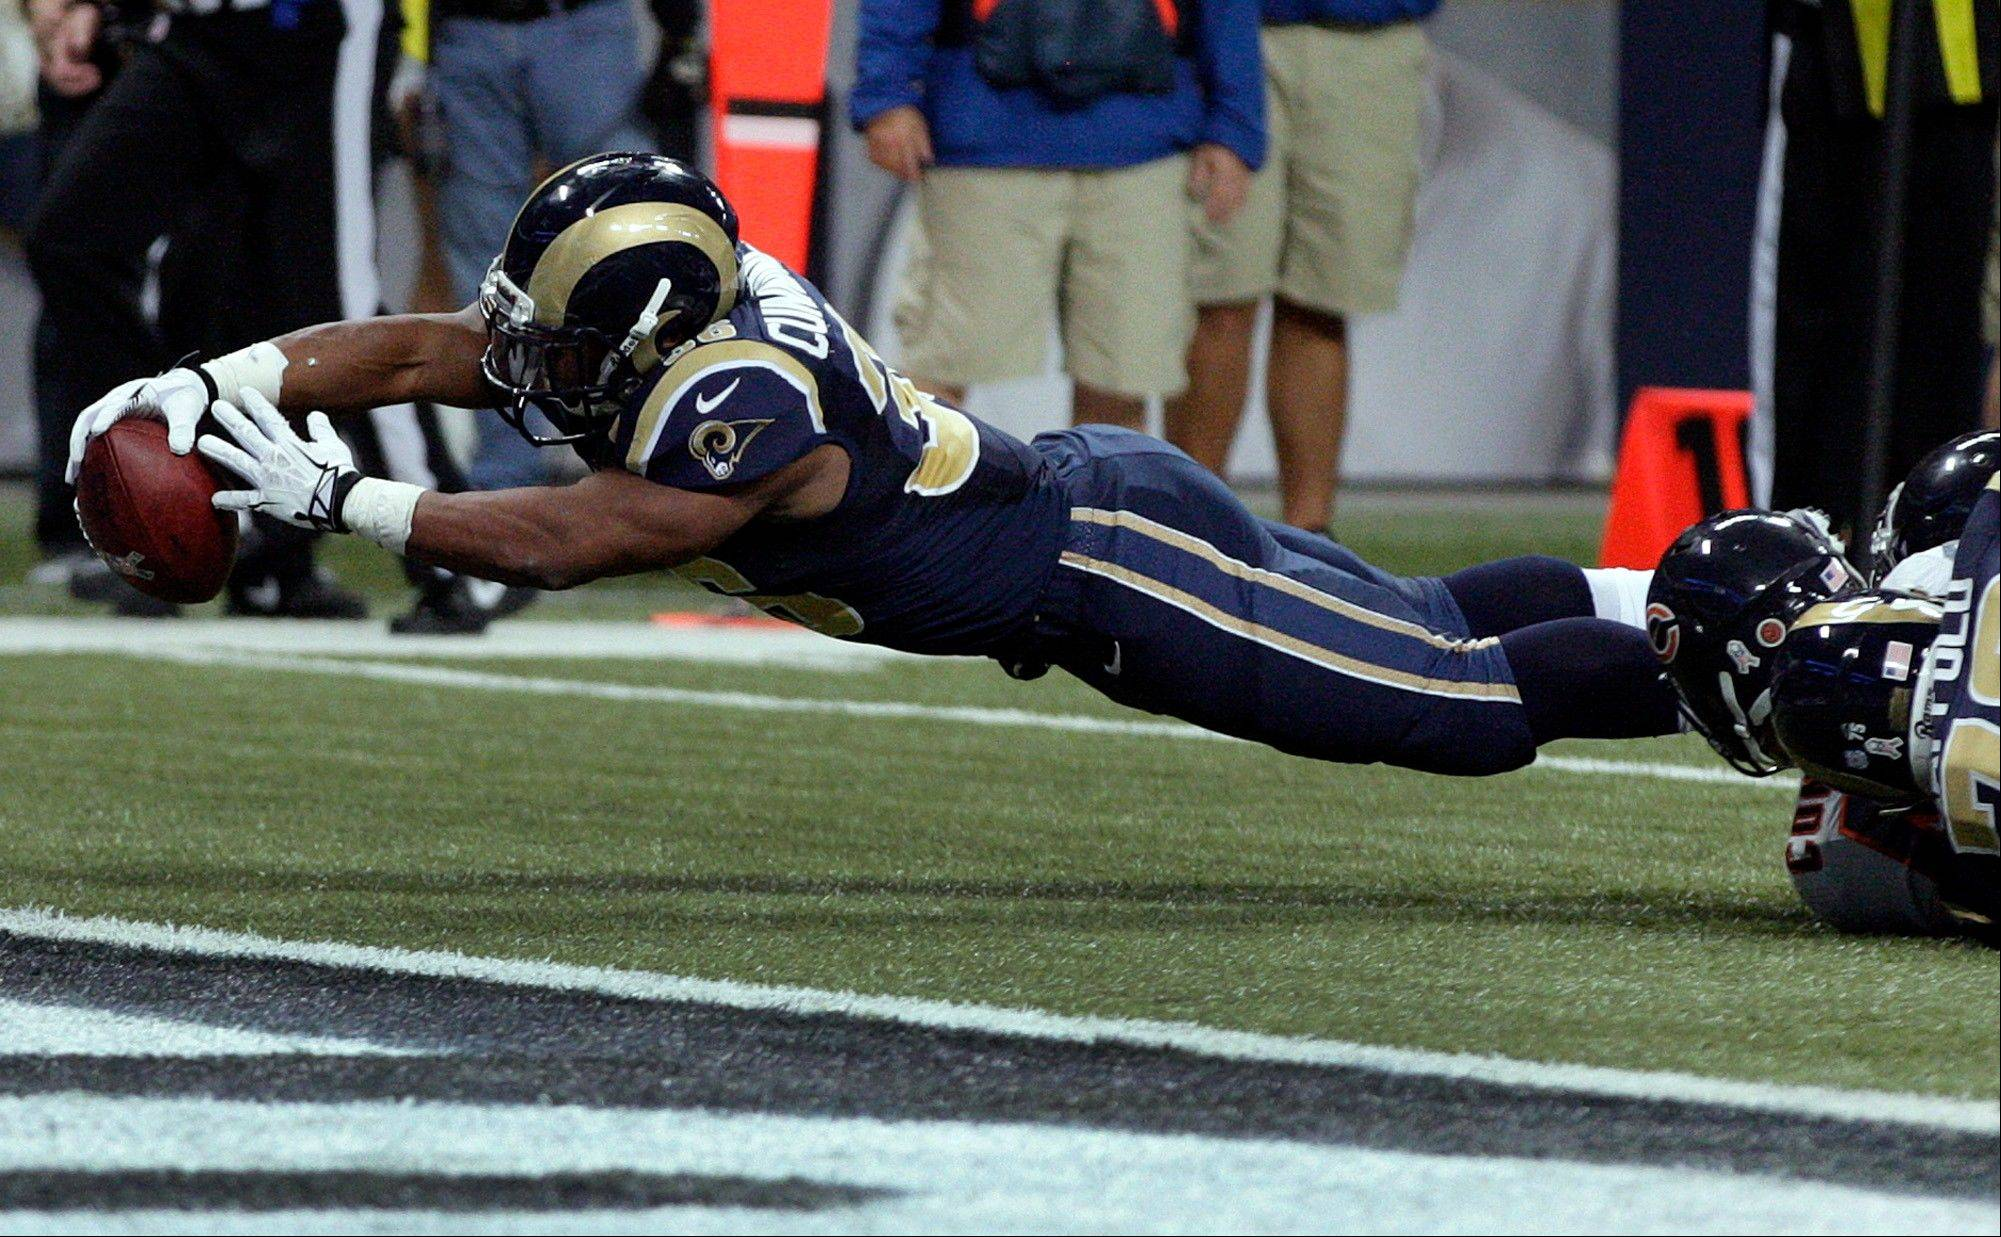 St. Louis Rams running back Benny Cunningham dives into the end zone for a 9-yard touchdown during the fourth quarter. The Rams won 42-21.